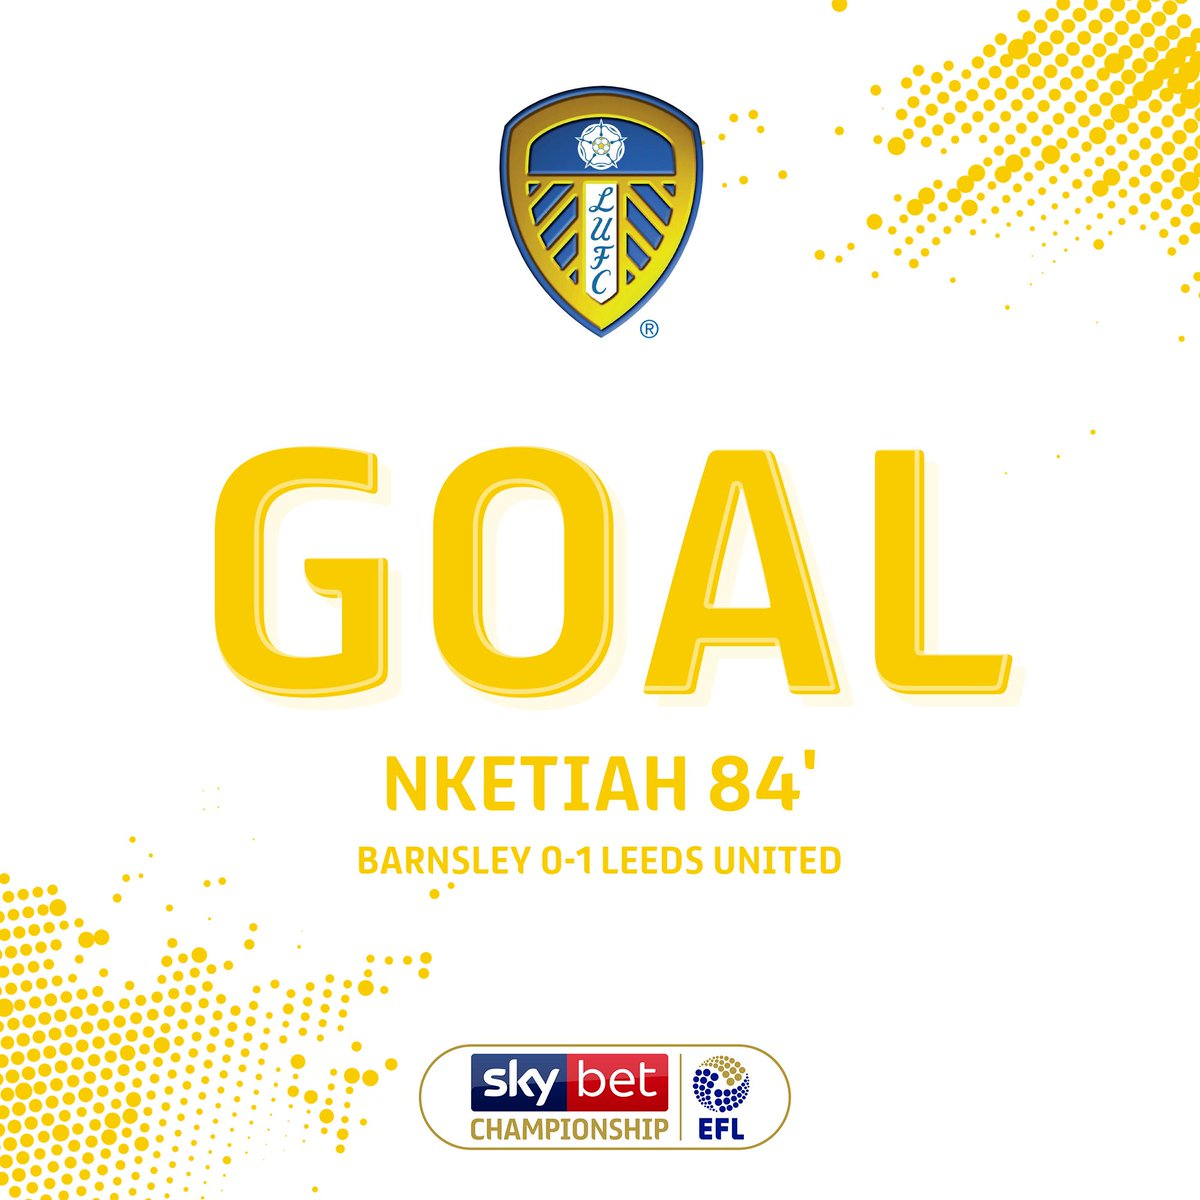 GOAL! It has been coming, Eddie Nketiah fires home from a Costa free-kick... #EFL | #SkyBetChampionship